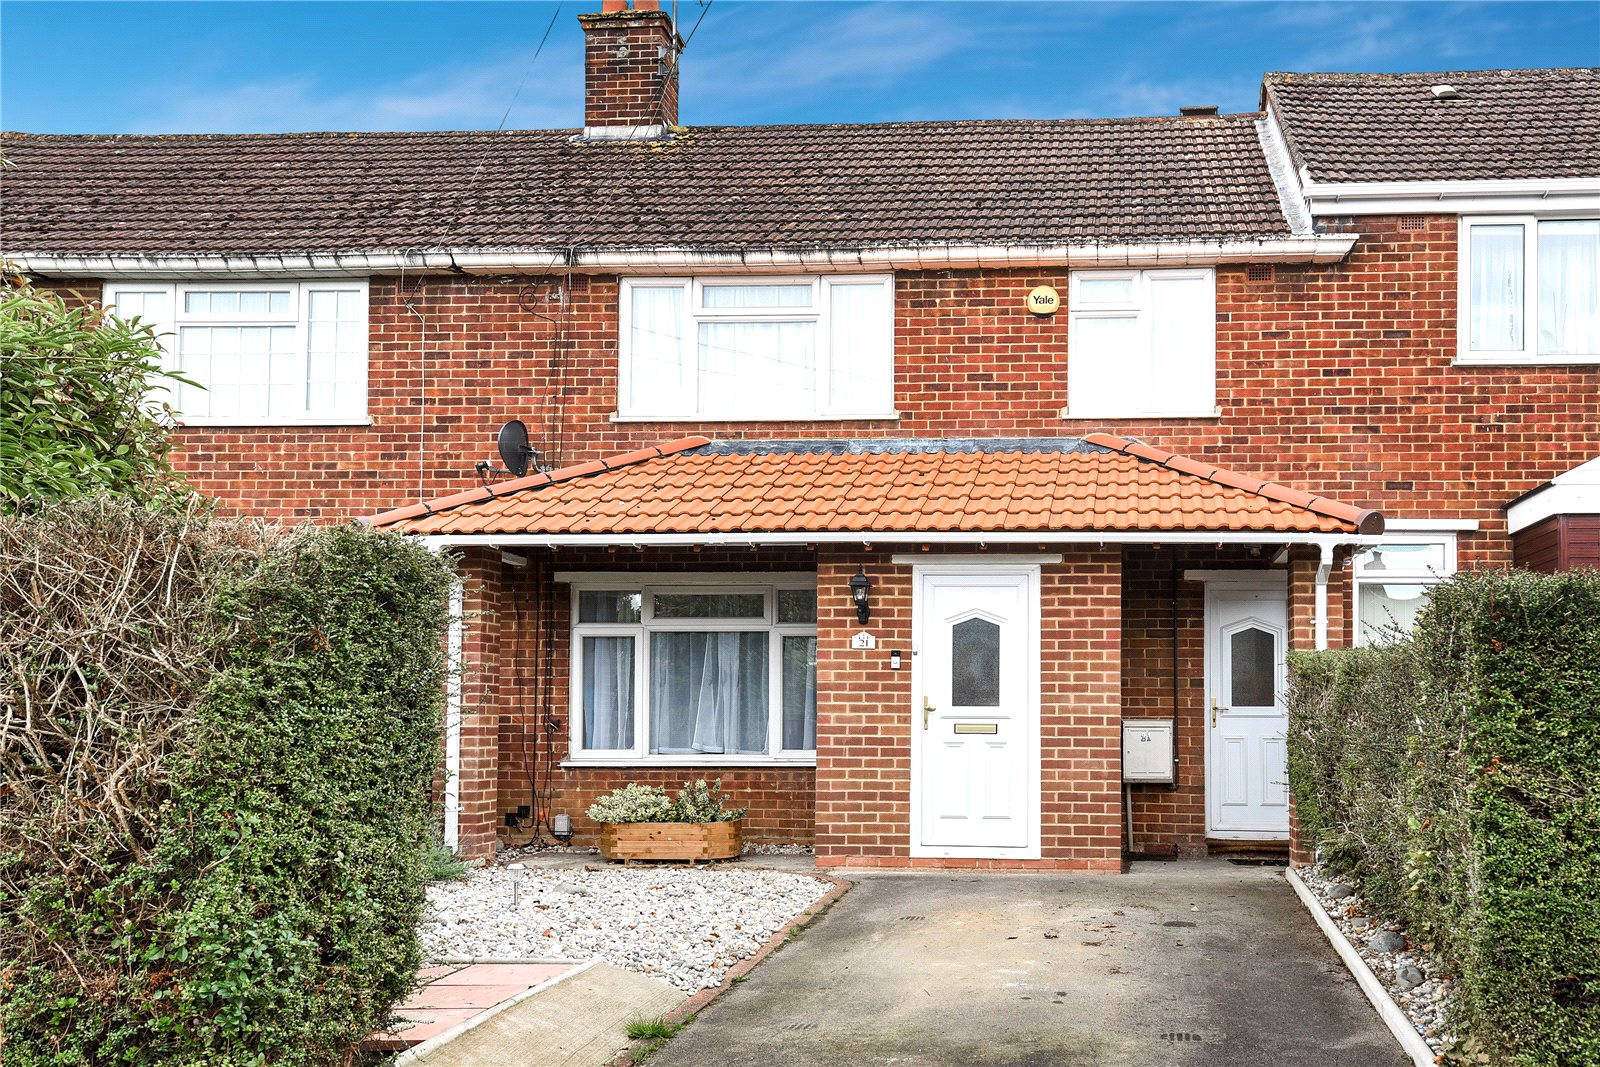 3 Bedrooms Terraced House for sale in Gainsborough Road, Reading, Berkshire, RG30